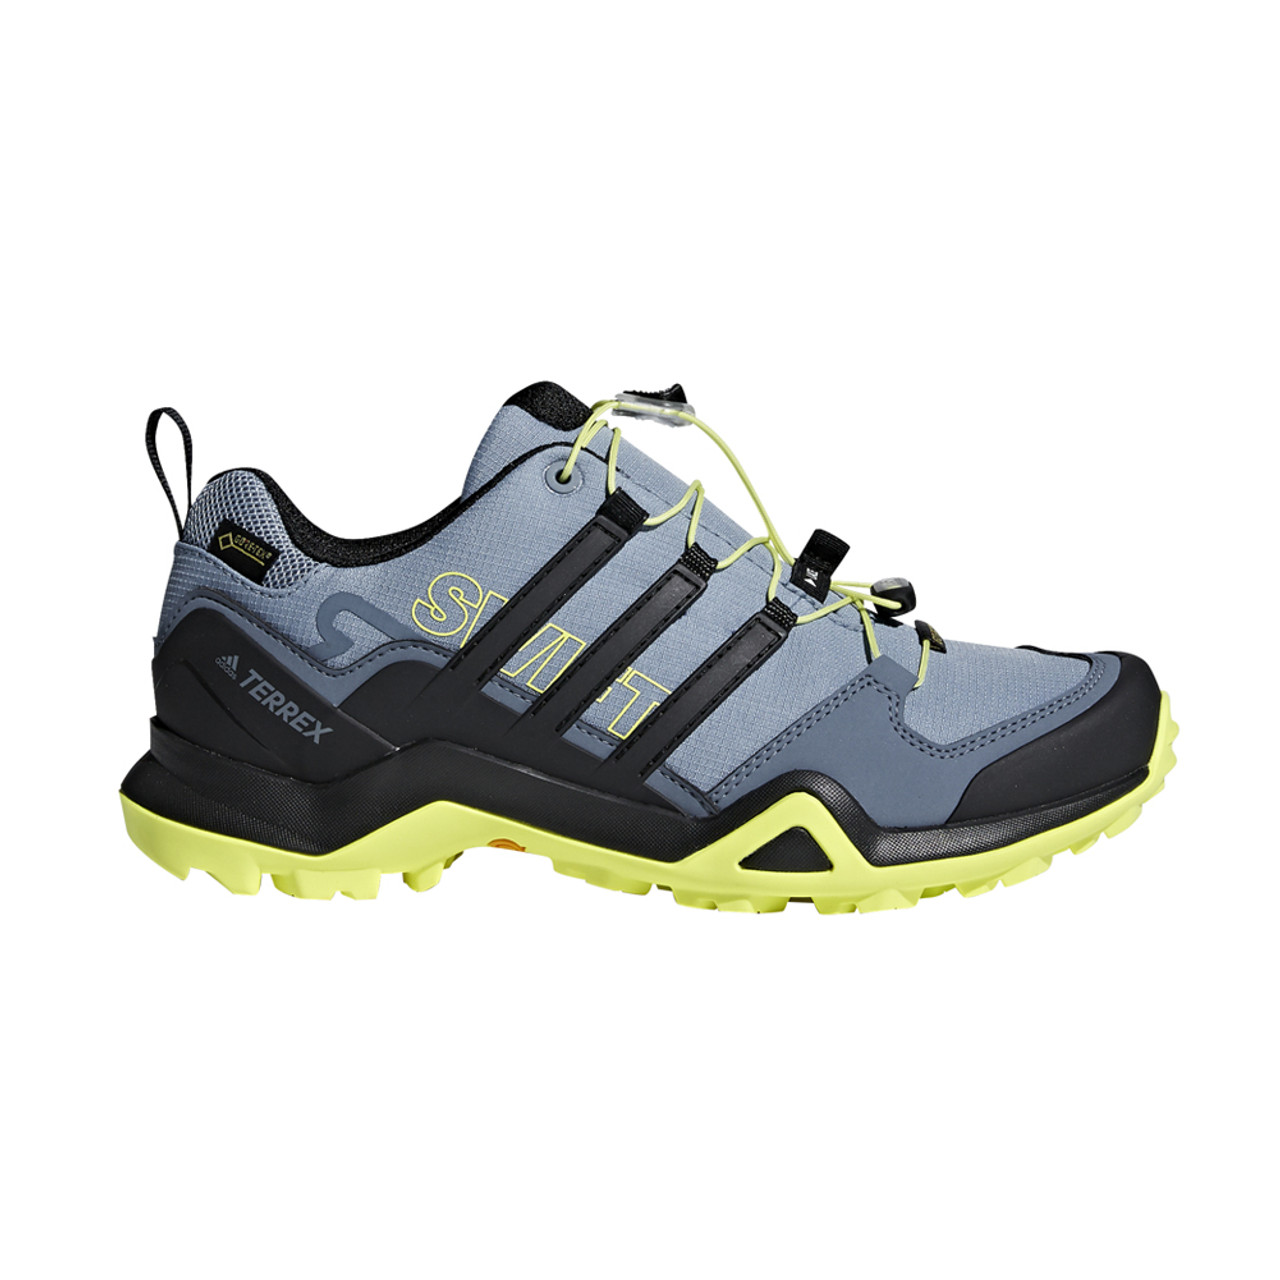 a3e0b04d2 Adidas Women s Terrex Swift R2 GTX Hiking Shoe - Blue